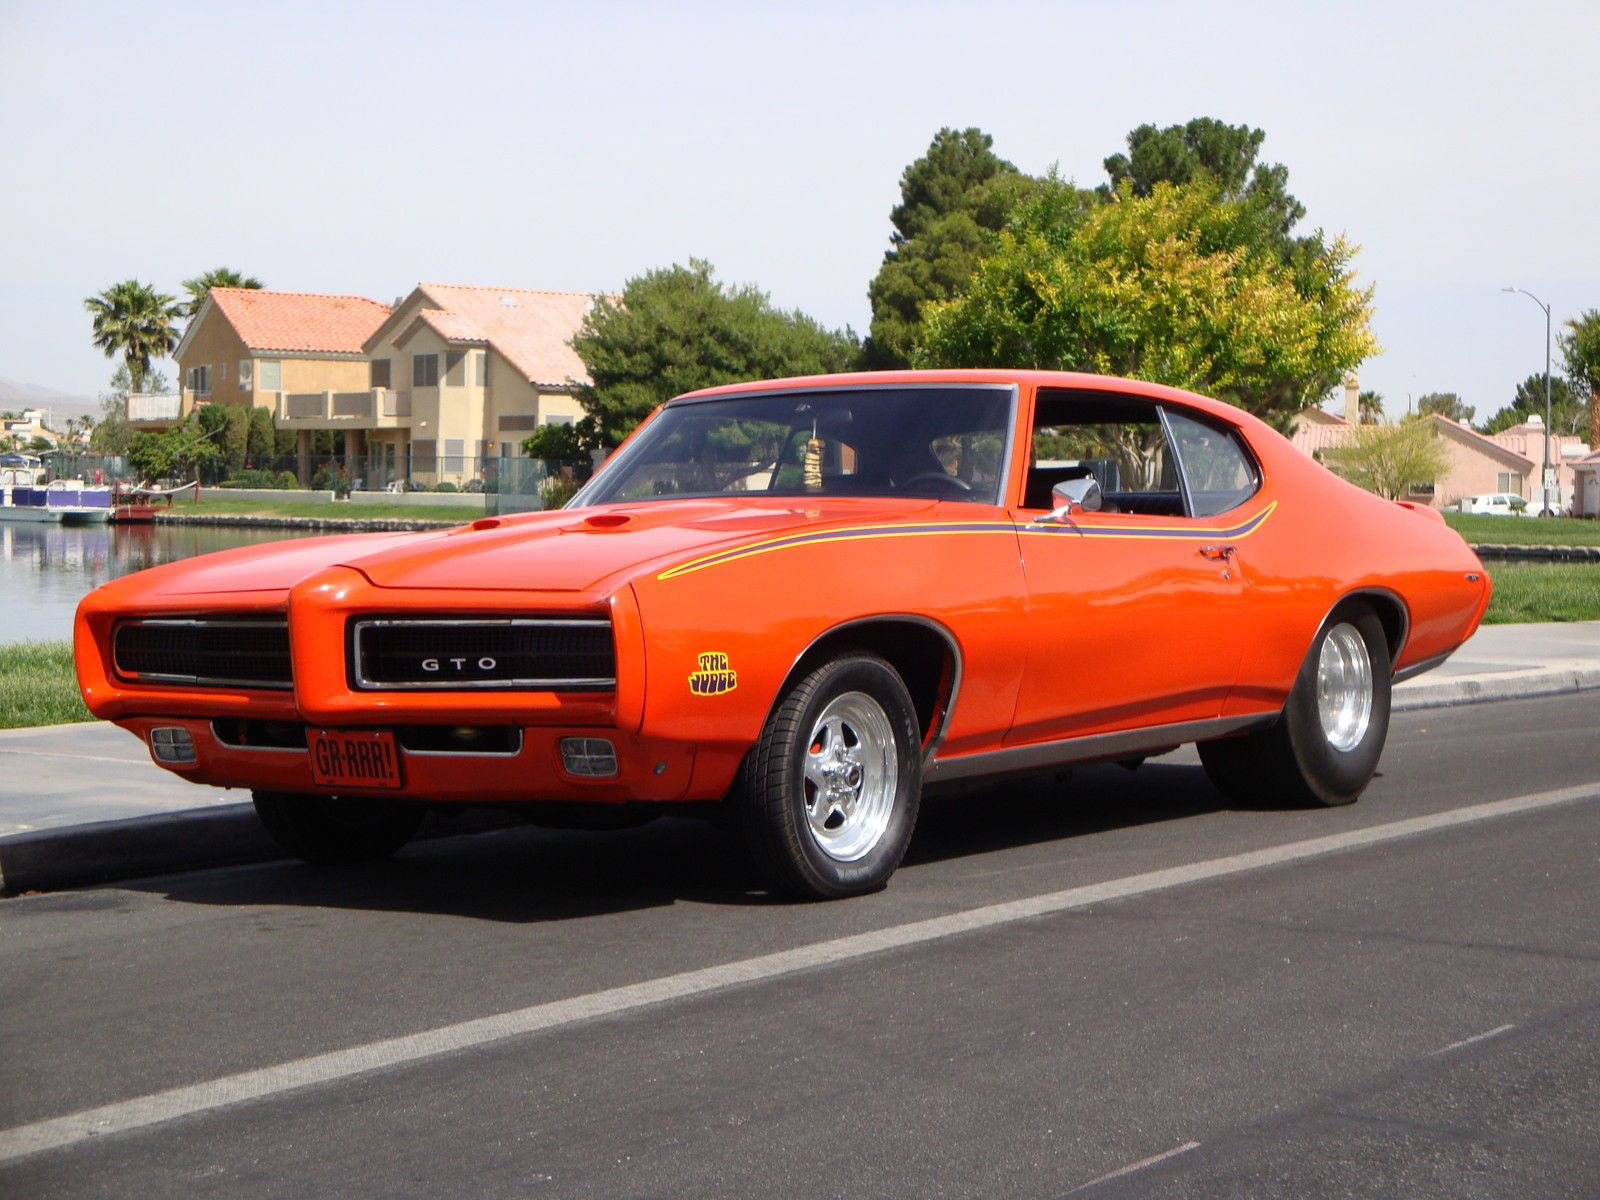 Pro Touring Muscle Cars For Sale >> 1969 Pontiac GTO JUDGE Pro Street - Classic Pontiac GTO 1969 for sale